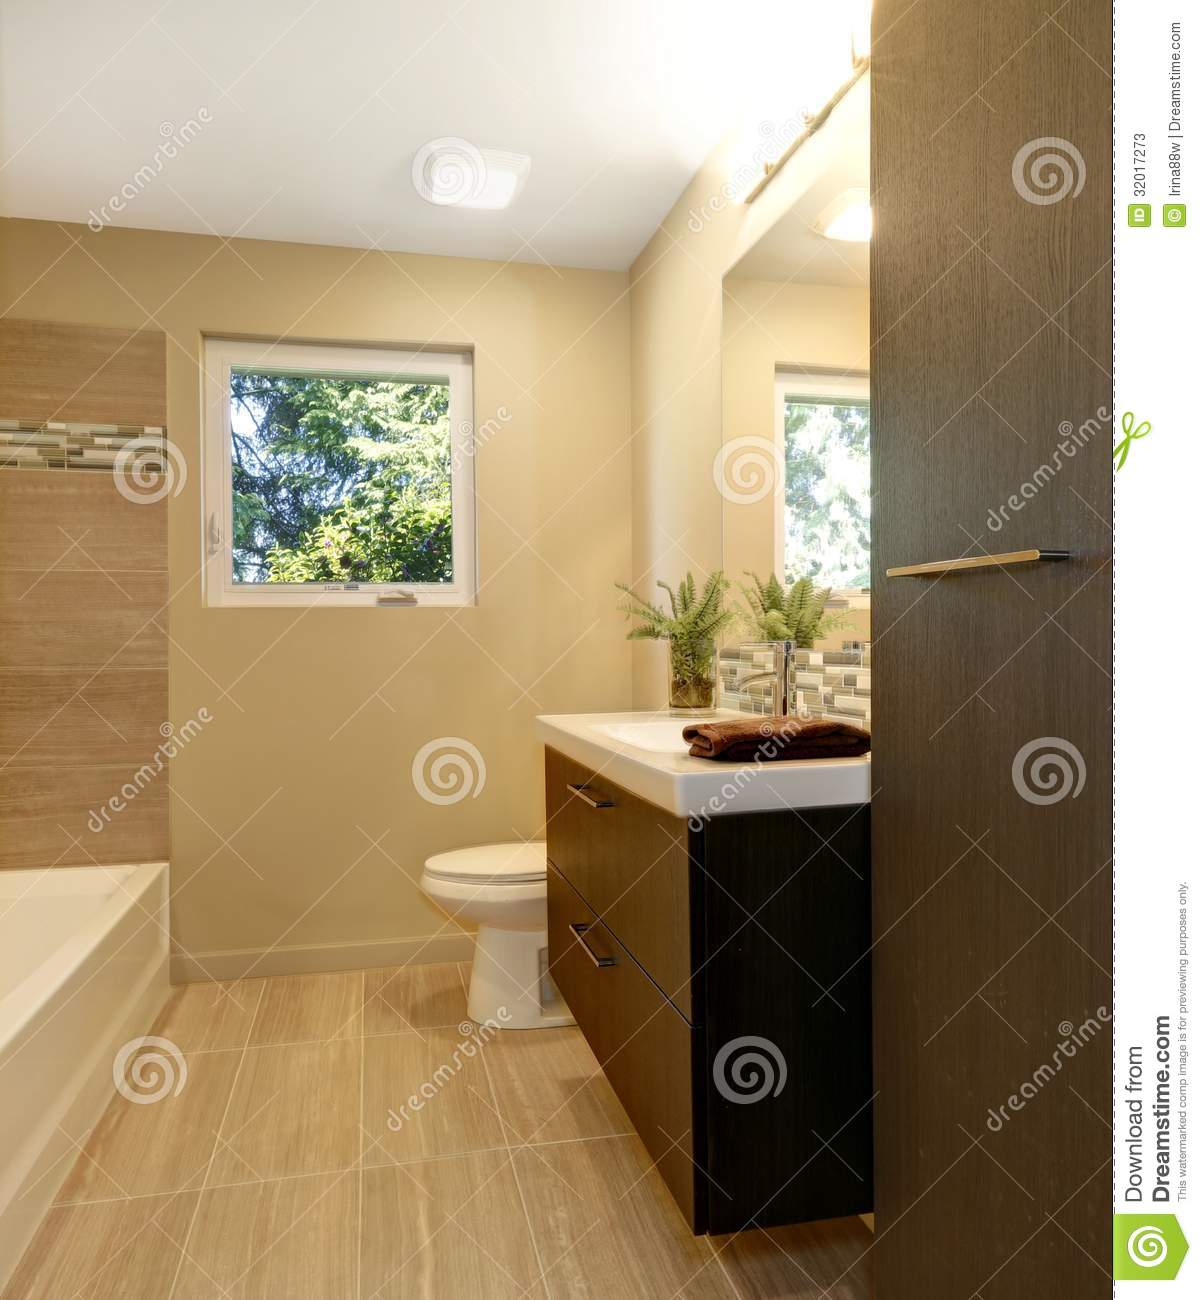 Beige modern new bathroom with brown wood cabinets and tub stock image image of indoor Beige brown bathroom design